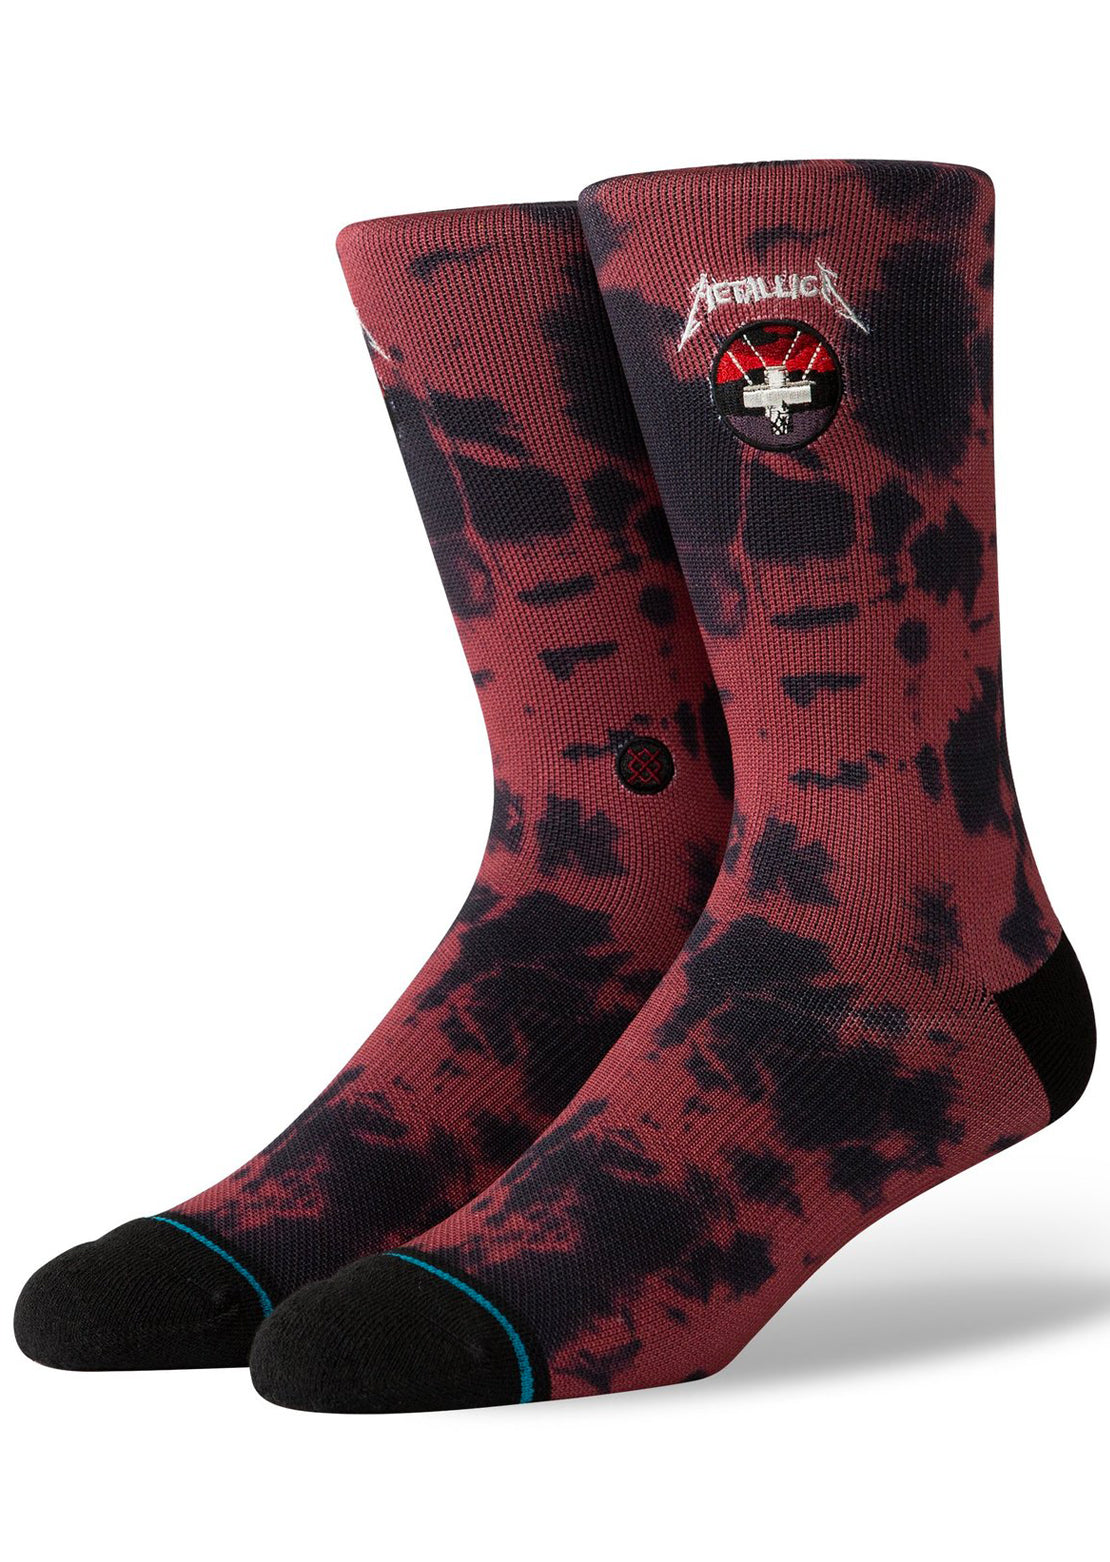 Stance X Metallica Men's Master of Puppets Crew Socks Red